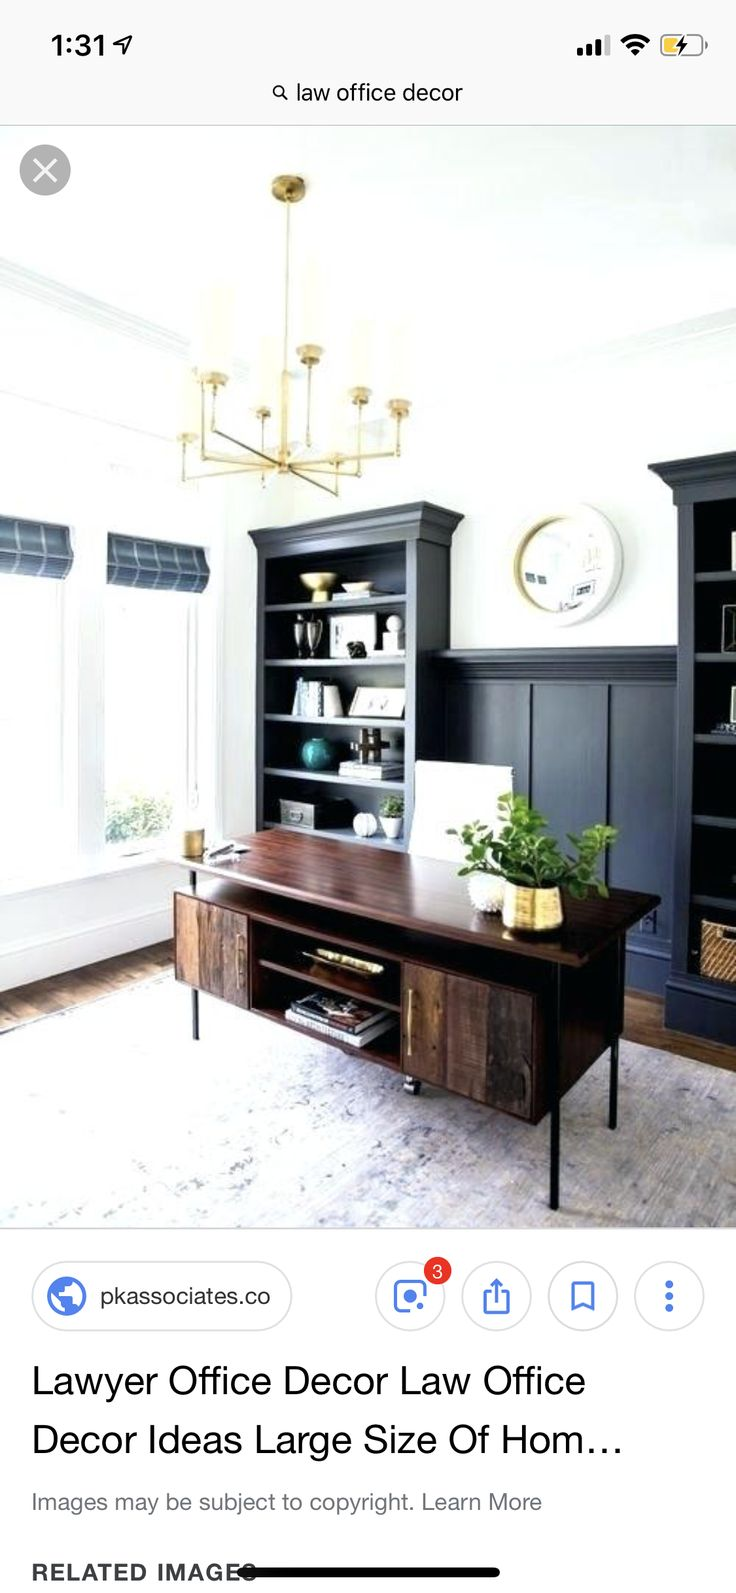 Pin by Dara Duncan on Dara's New Office Home, Home decor